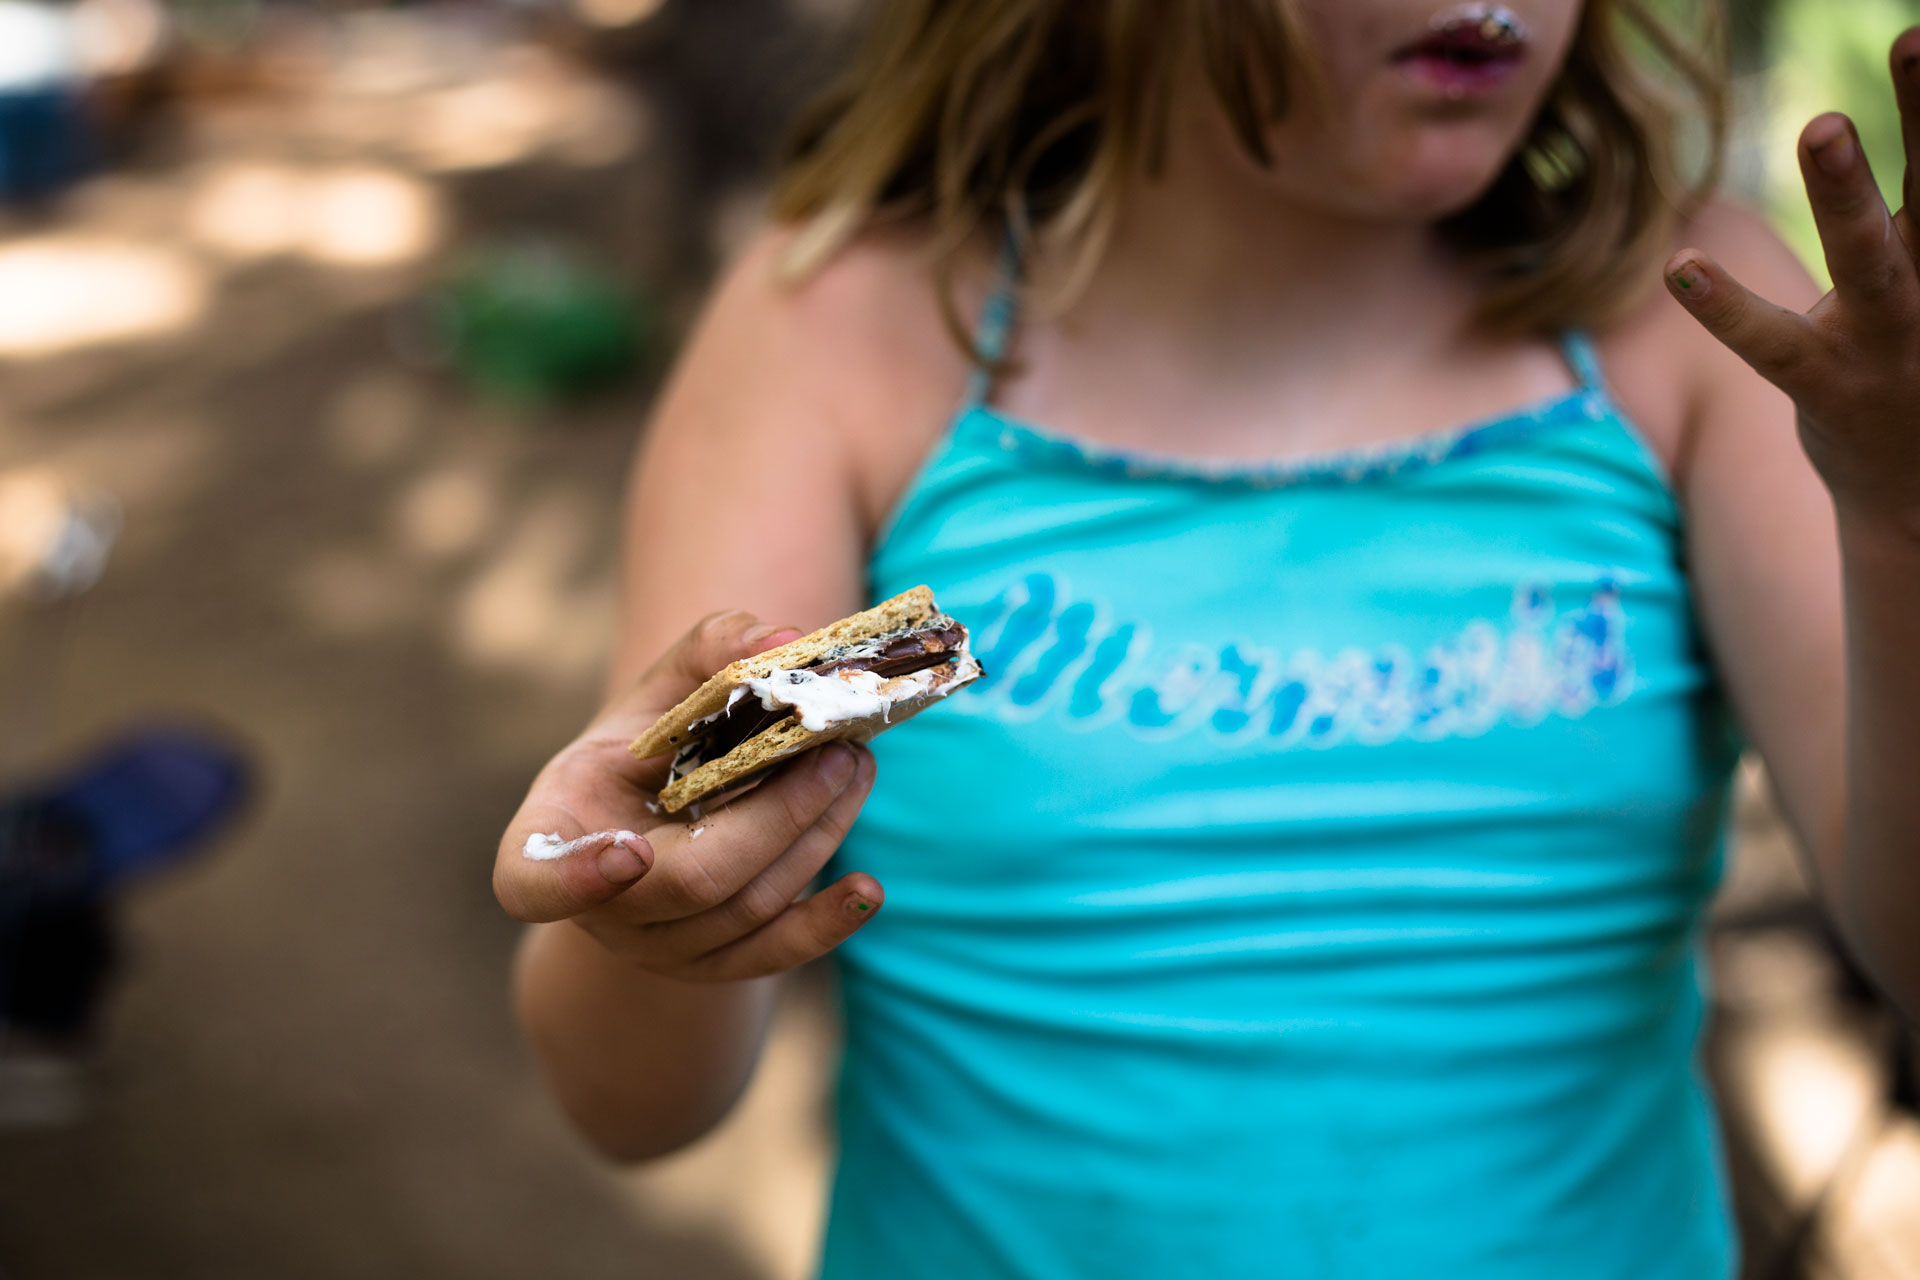 up close young girl holding a s'more and wearing a swimming suit